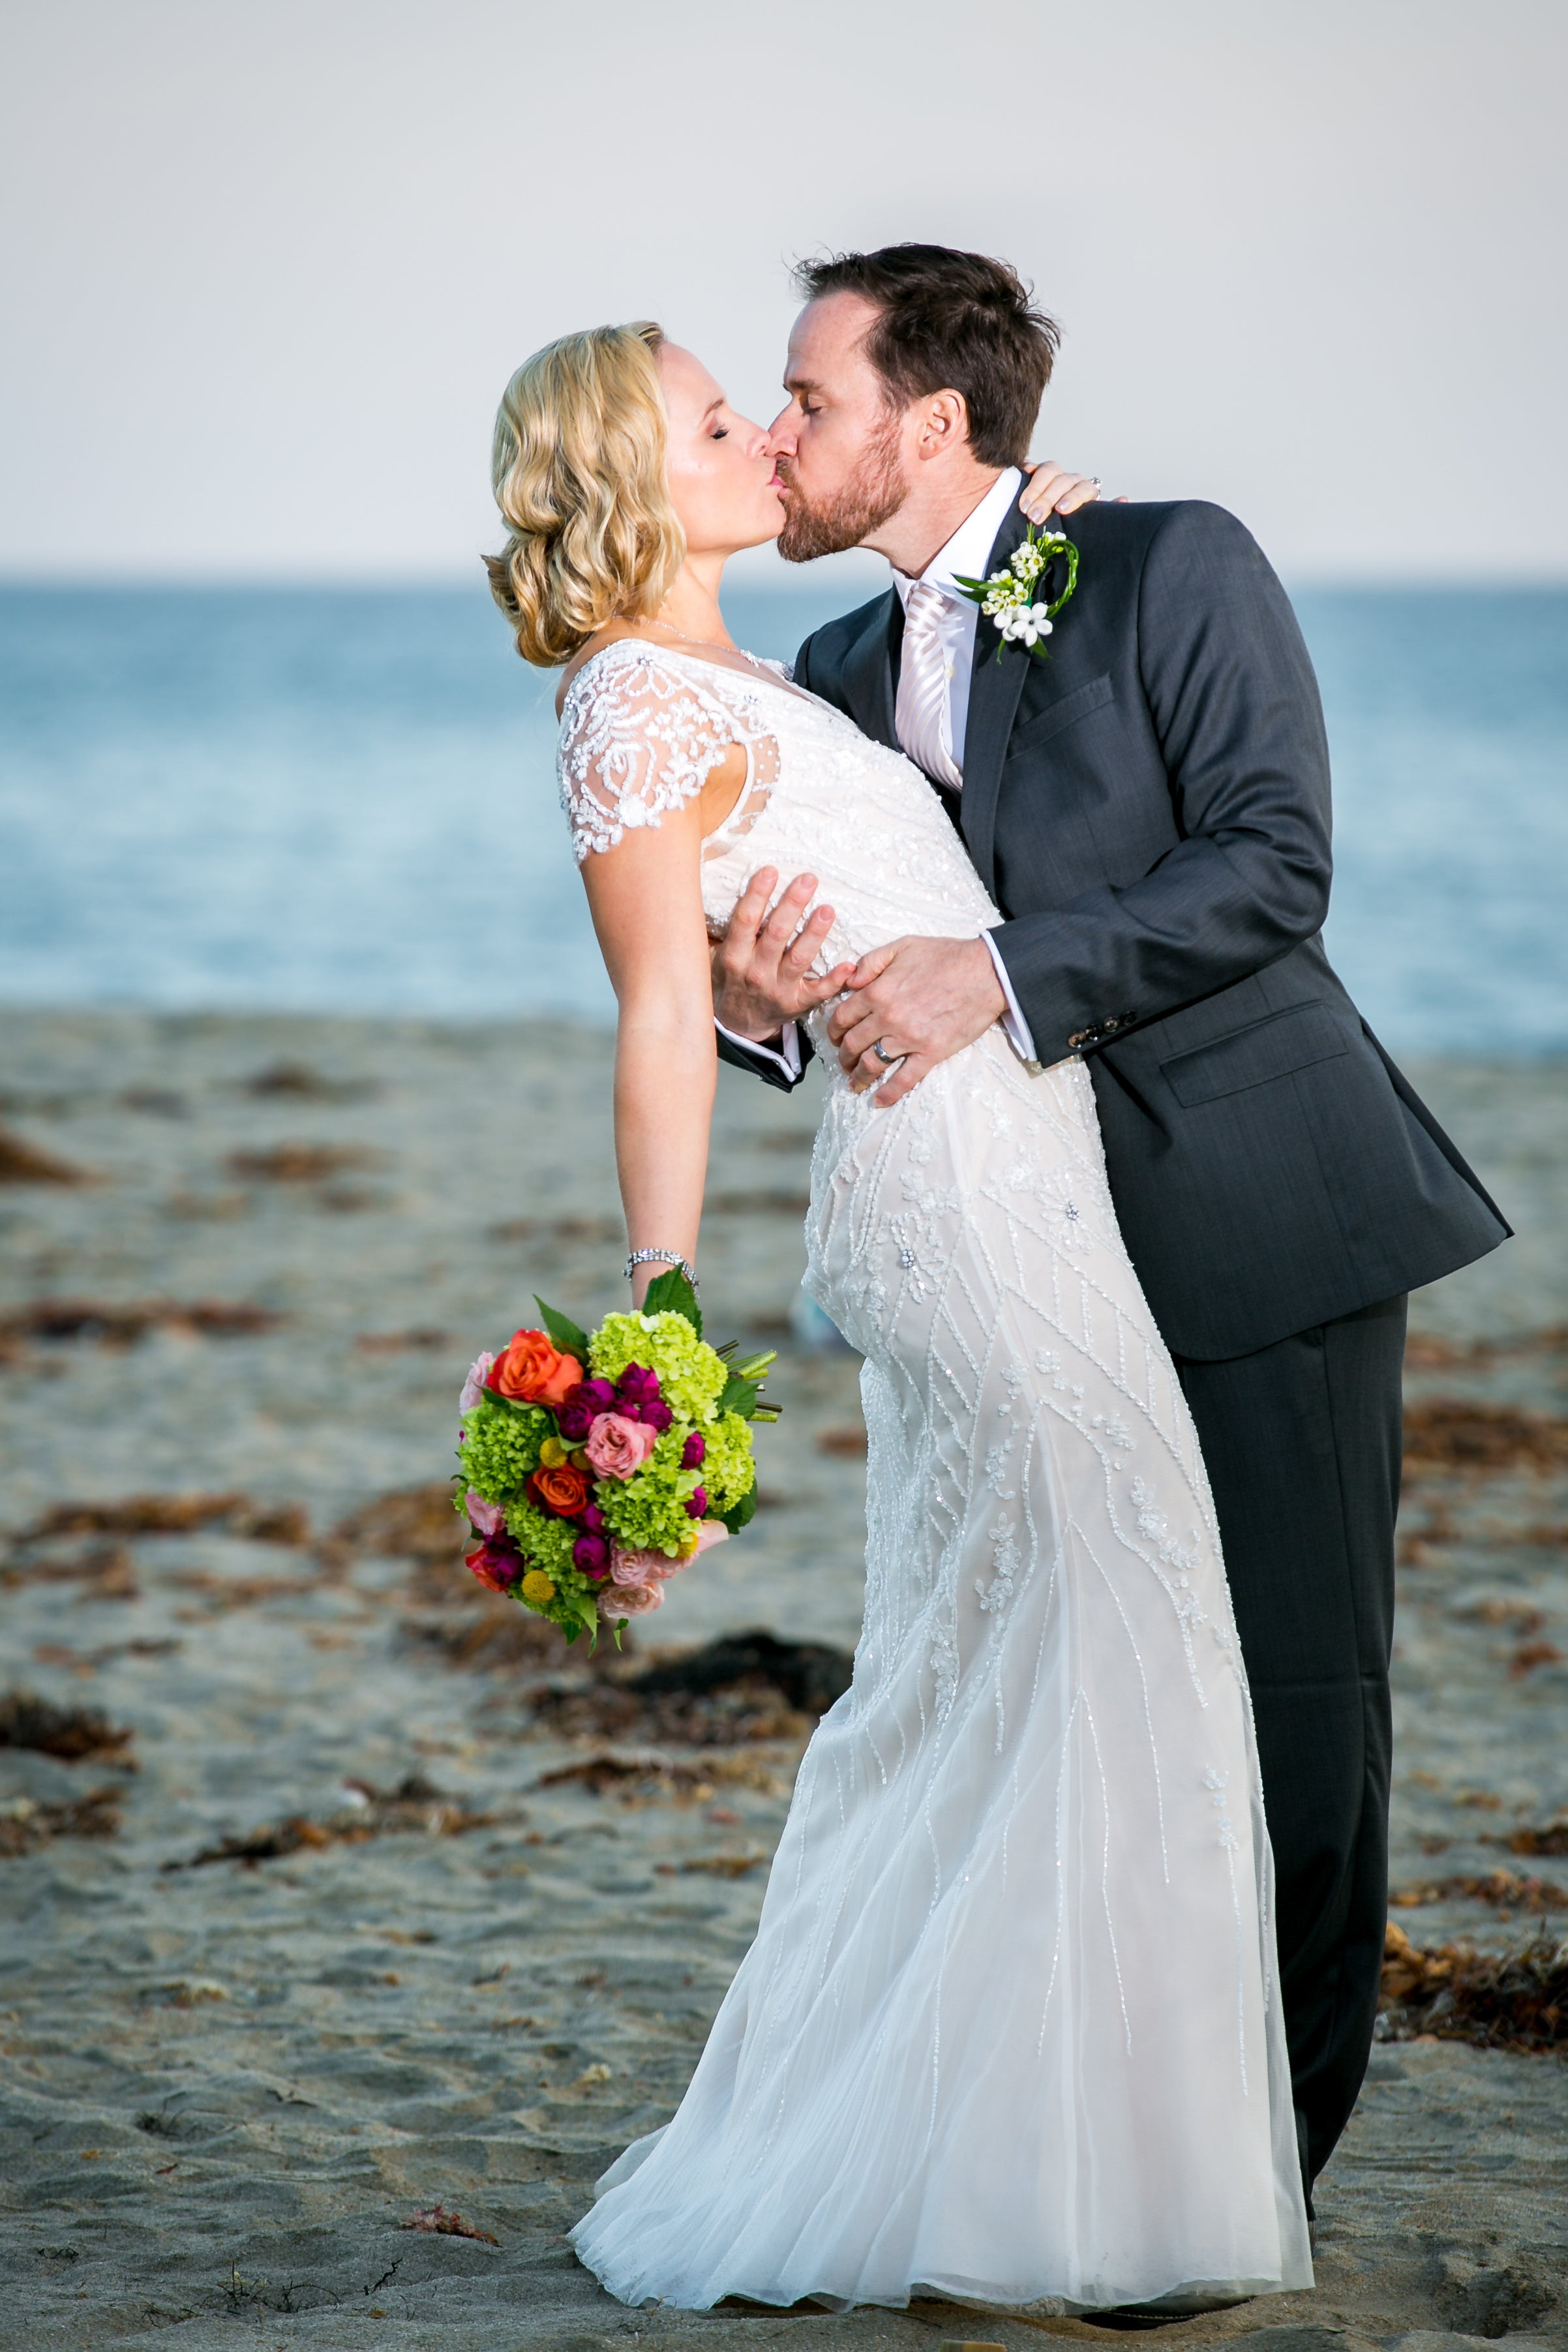 Nikki and Robby kissing on the beach on their wedding day